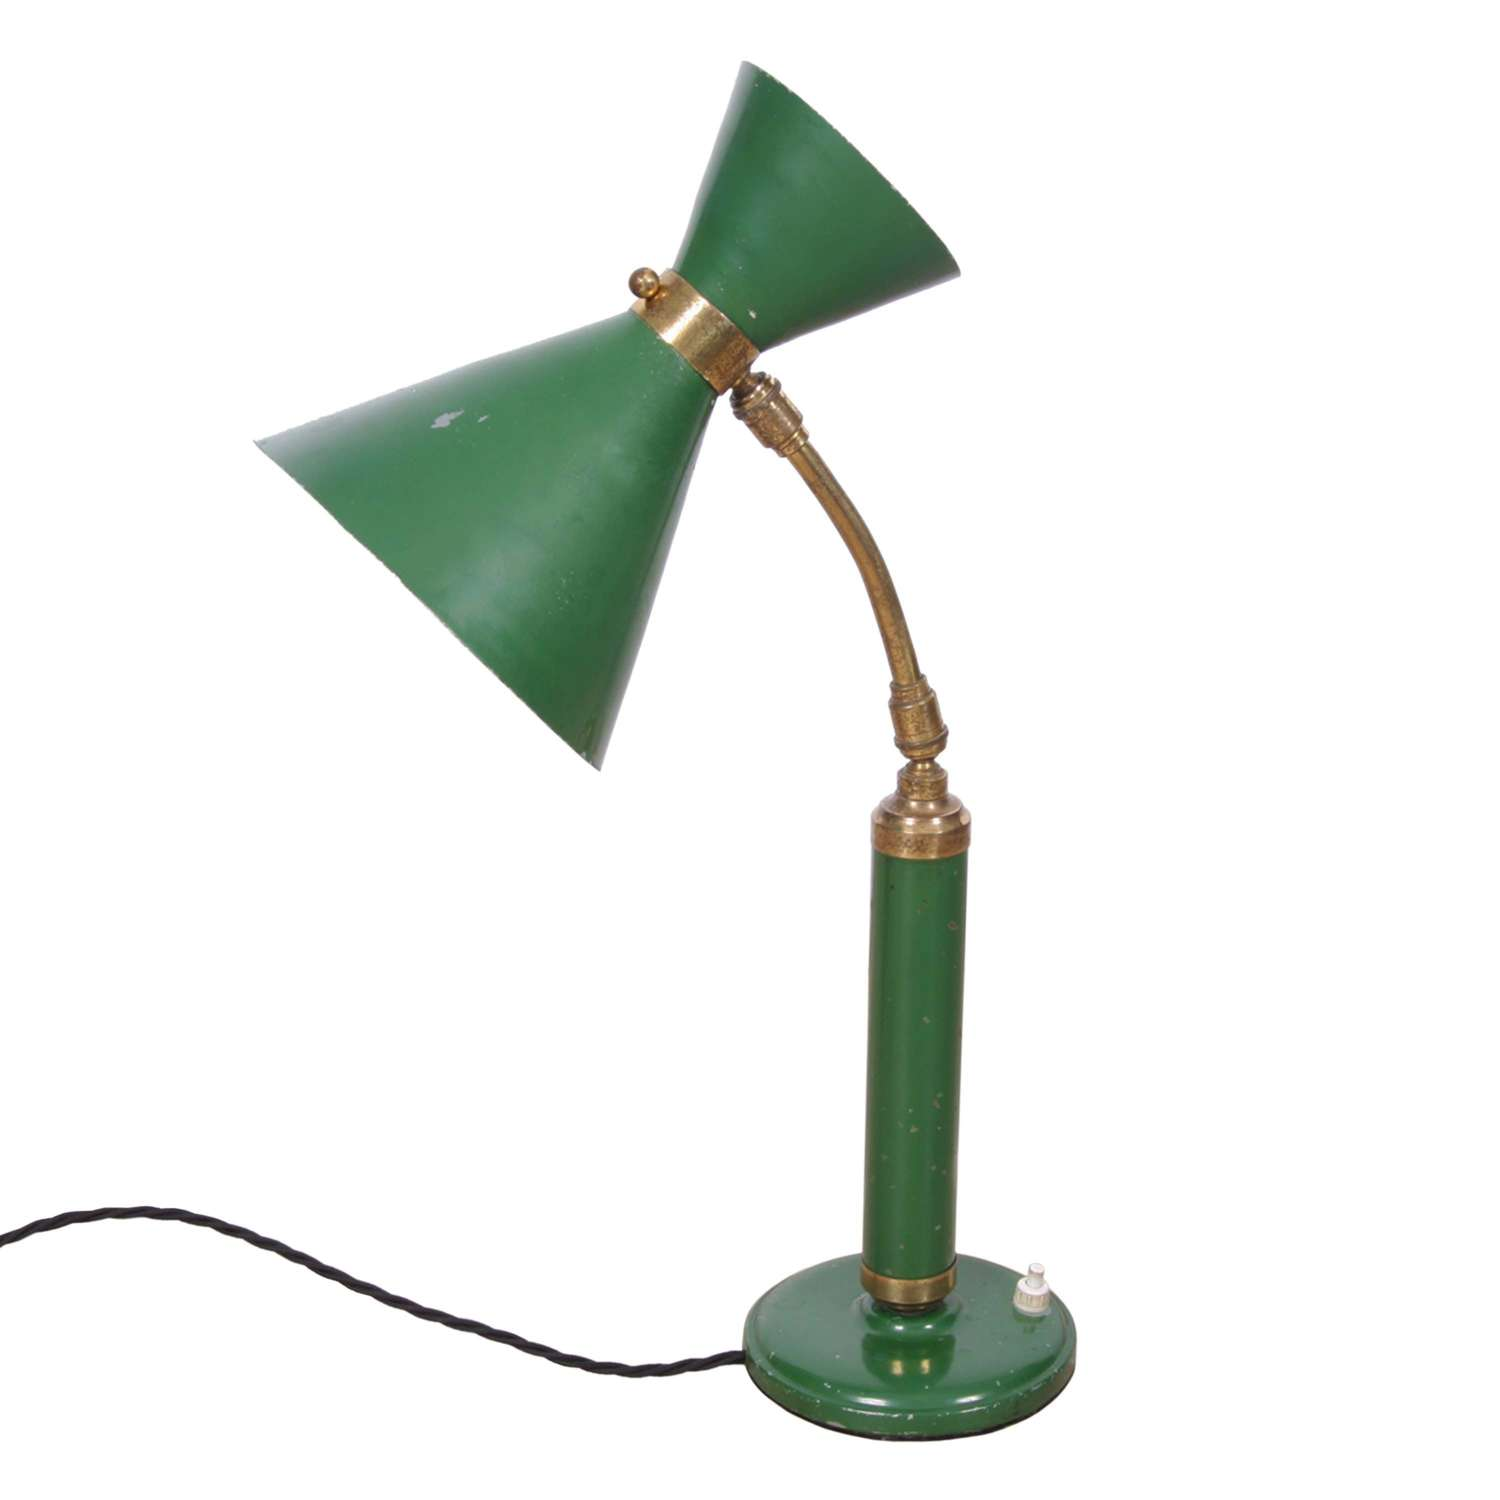 Italian 1950s Desk Lamp With Diablo Green Shade